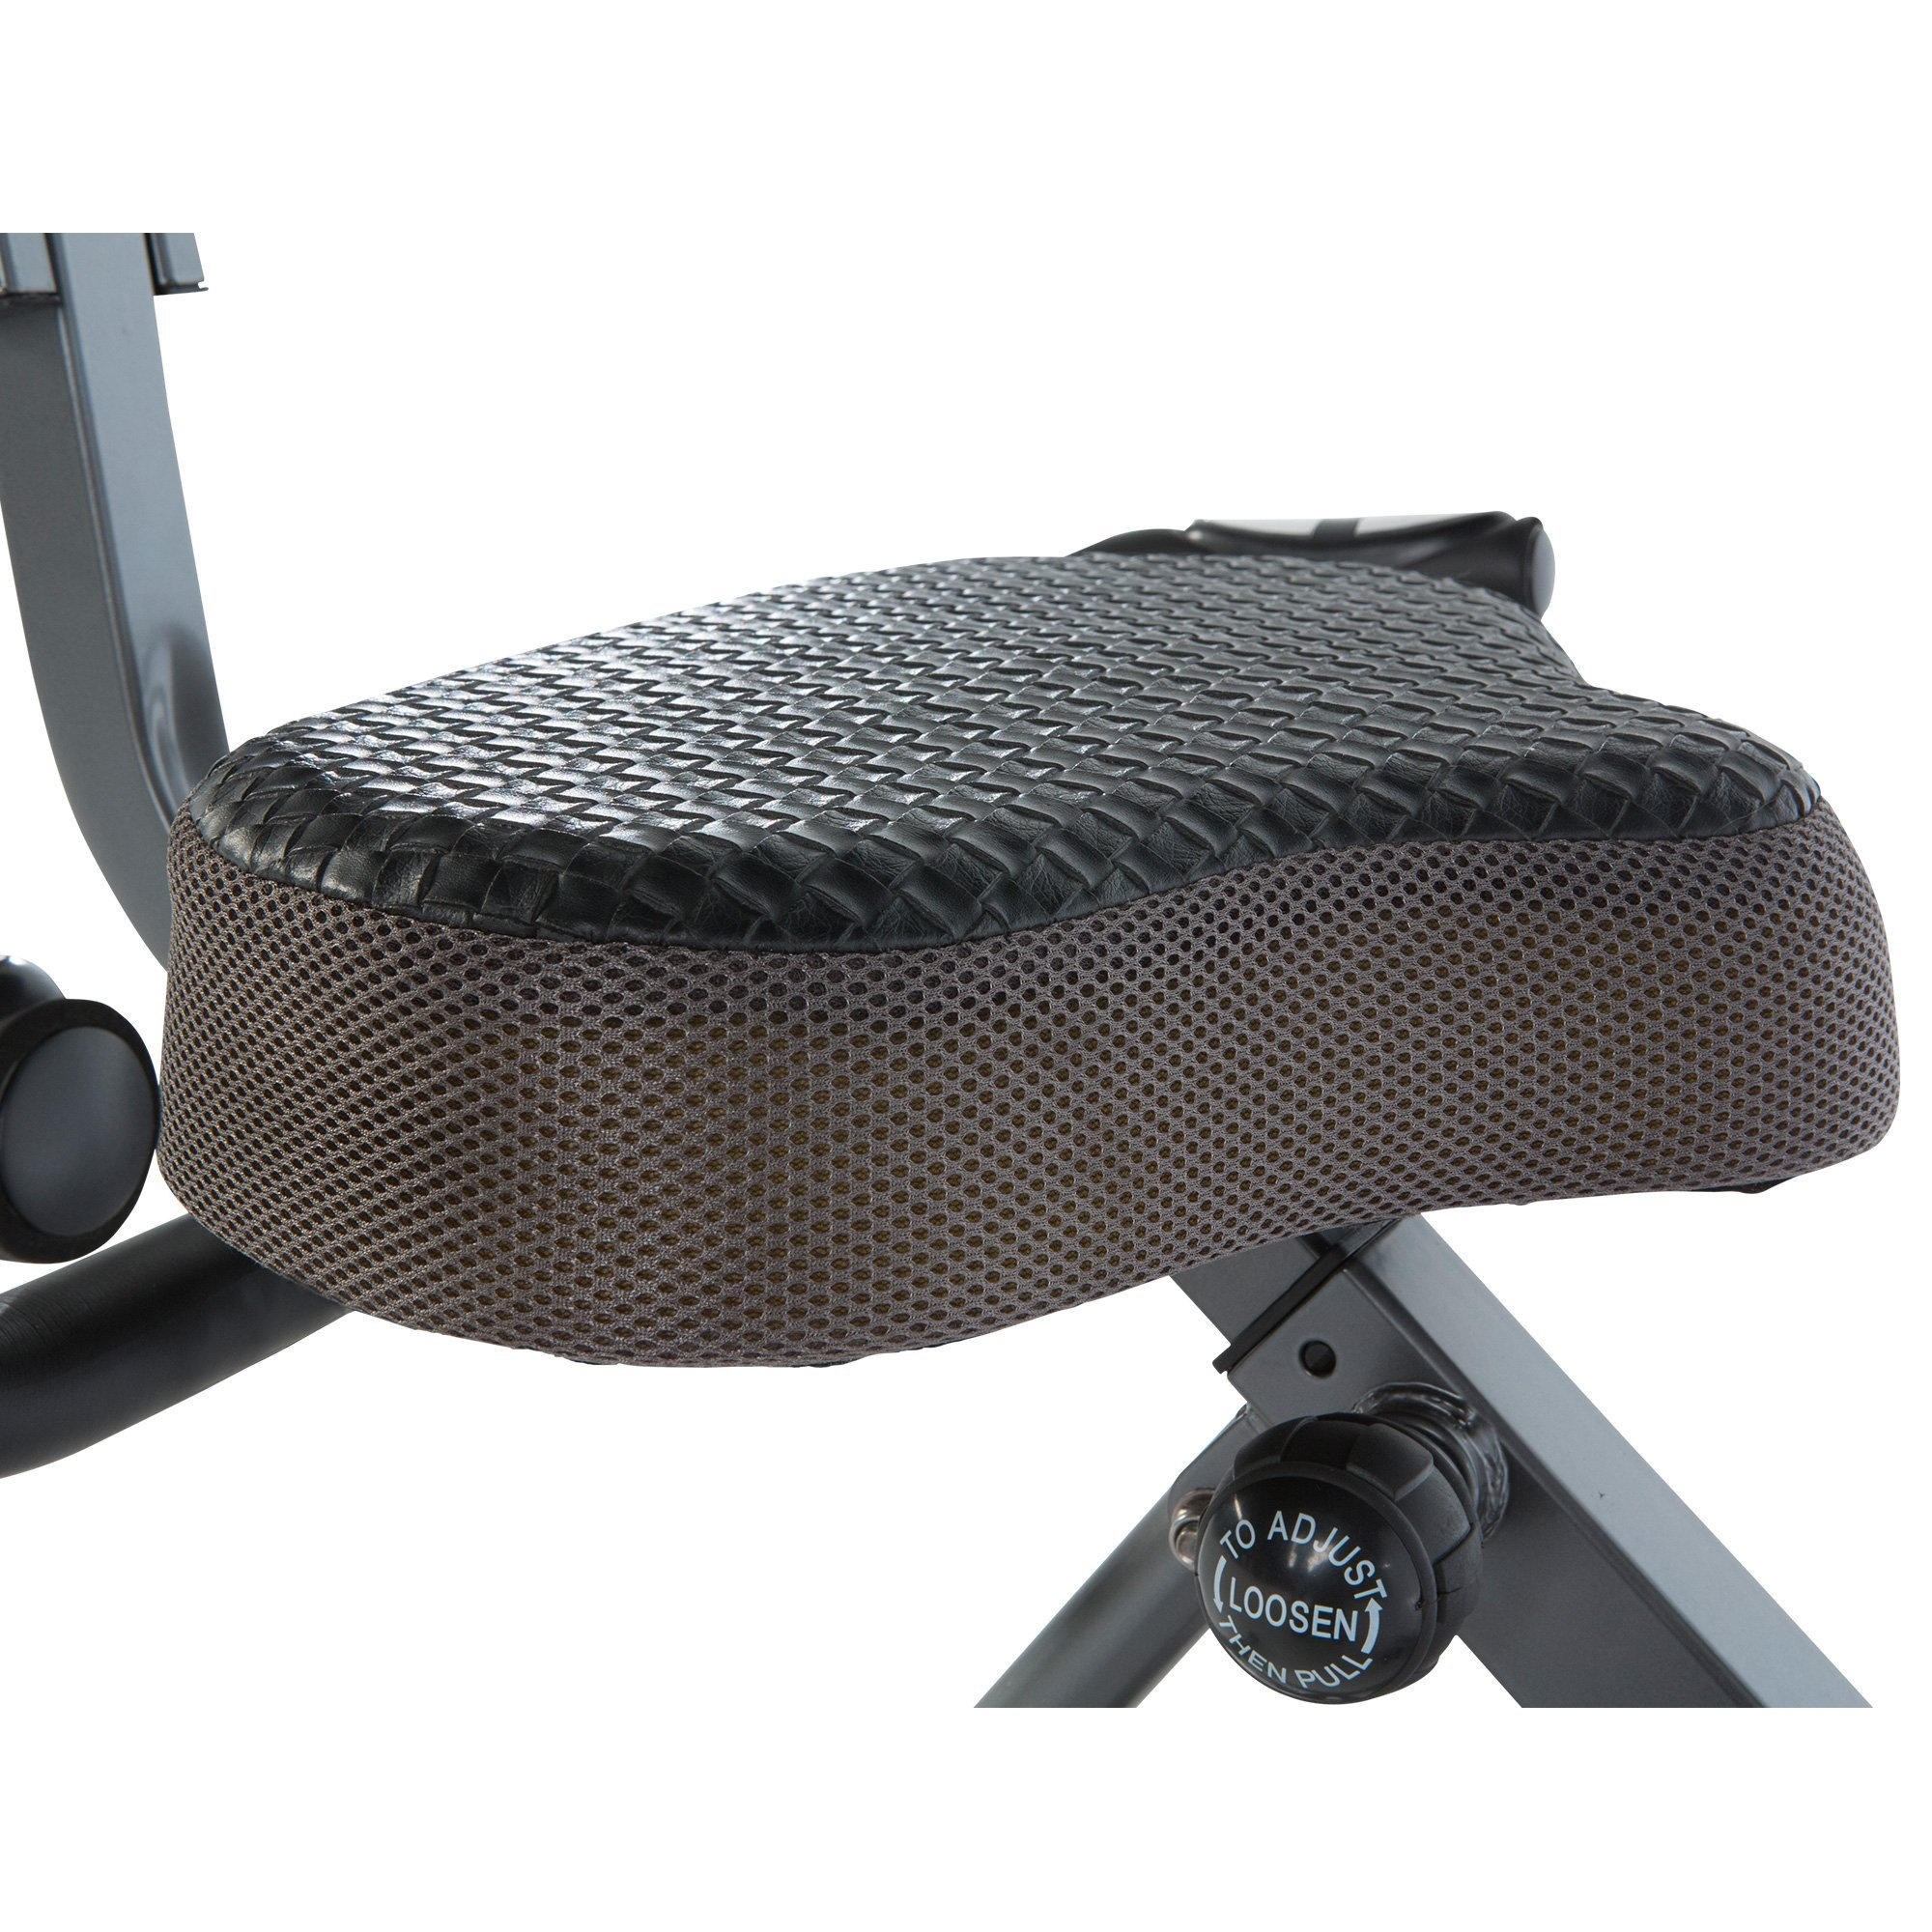 Exerpeutic ExerWorK 1000 Fully Adjustable Desk Folding Exercise Bike with Pulse by Exerpeutic (Image #14)